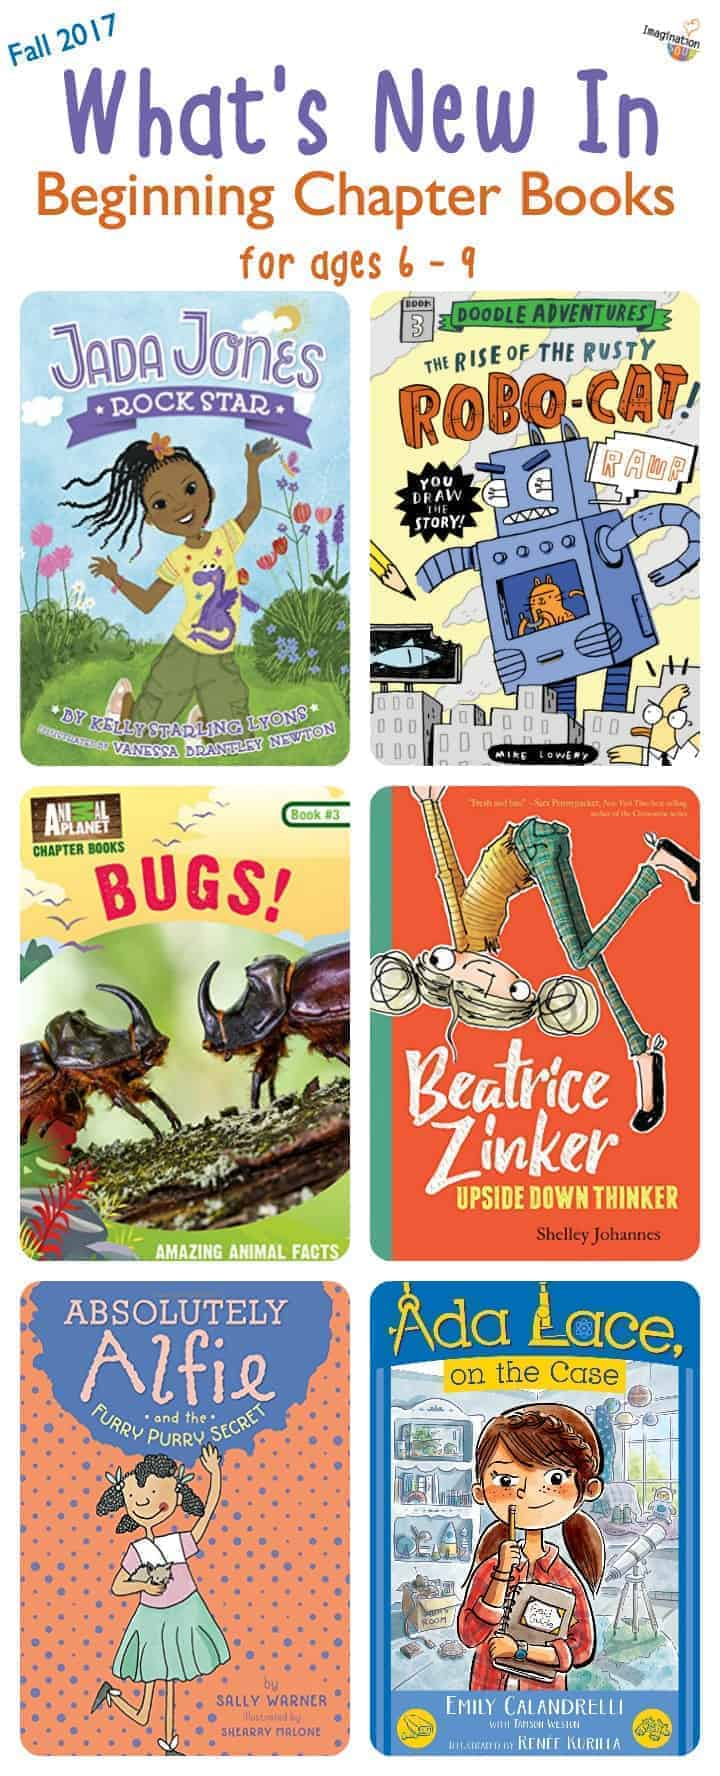 The Latest Beginning Chapter Books for Ages 6 to 9, Fall 2017